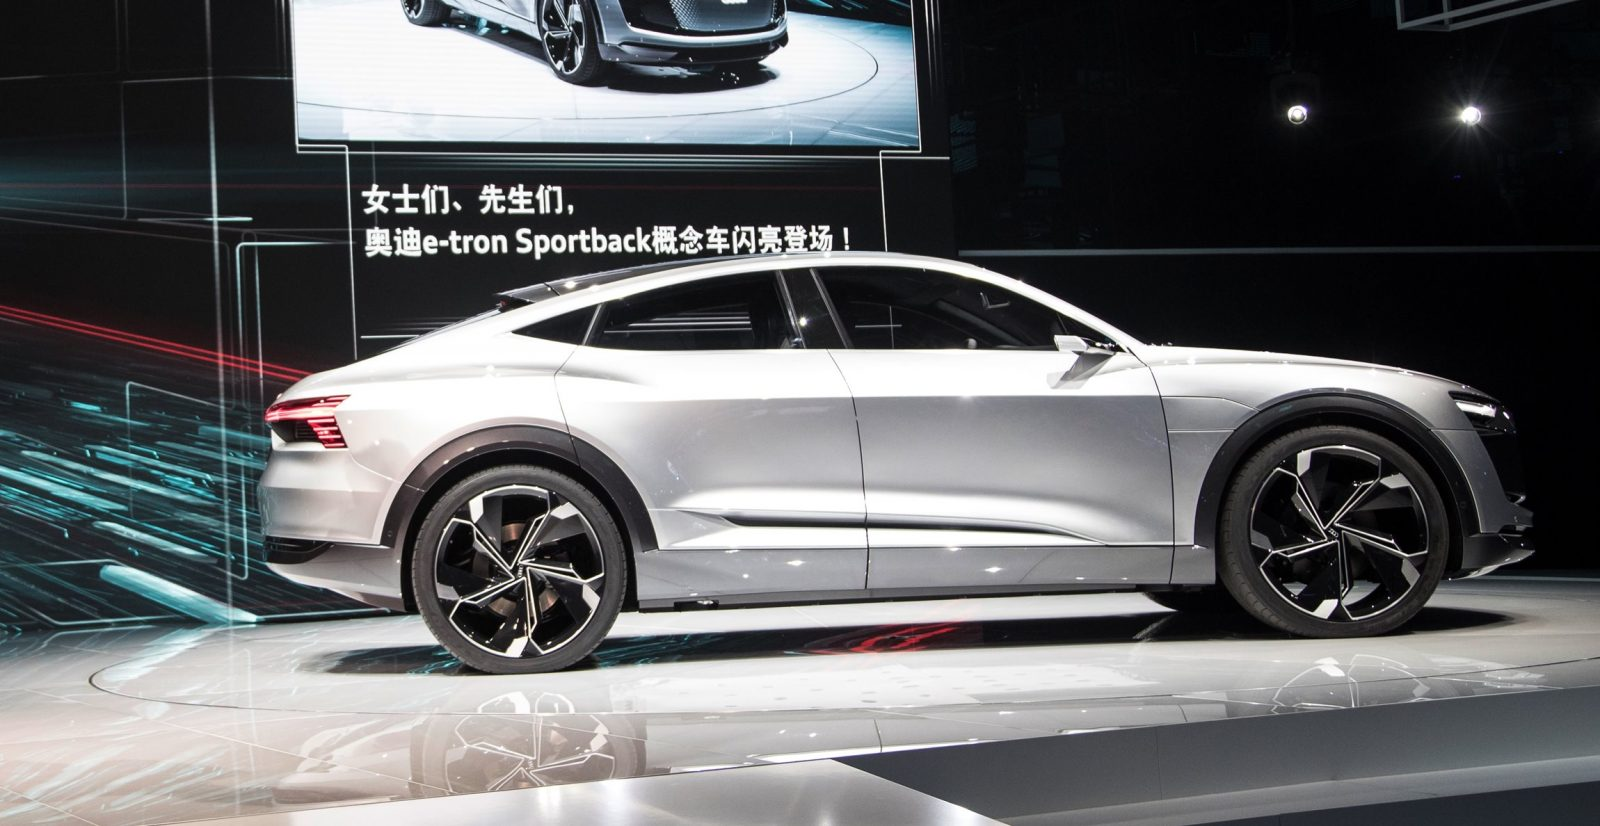 Audi Piloted Driving >> Update1 - 2017 Audi e-Tron Sportback Concept - Previews Q5 ...